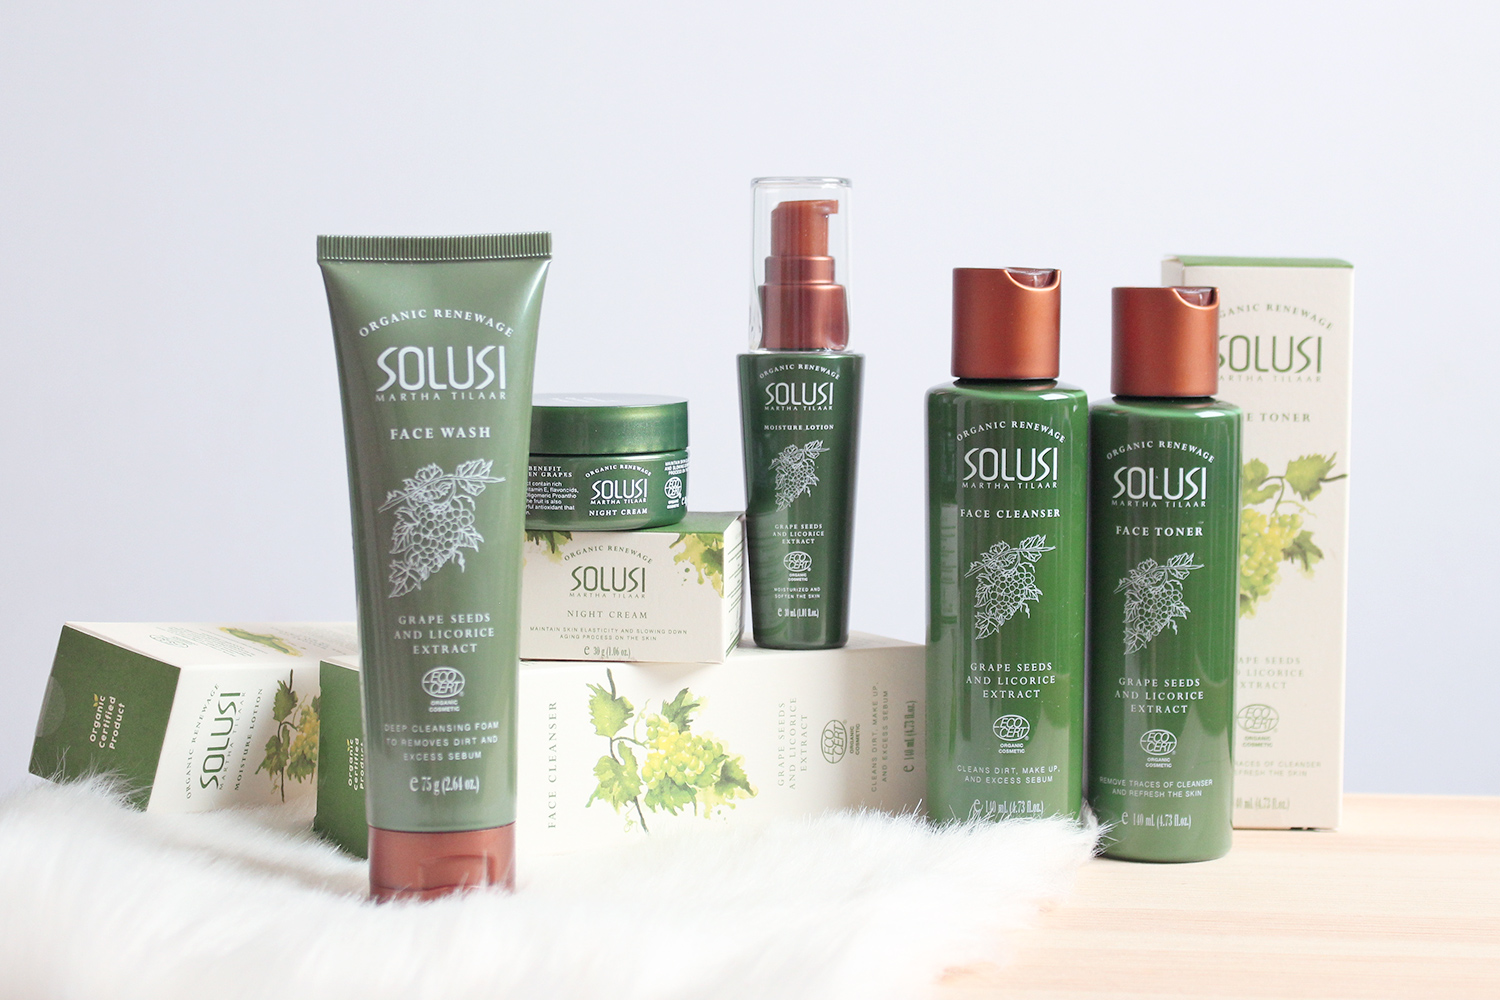 Local Organic Skincare : Solusi Organic Renewage Review | Milk Mochi